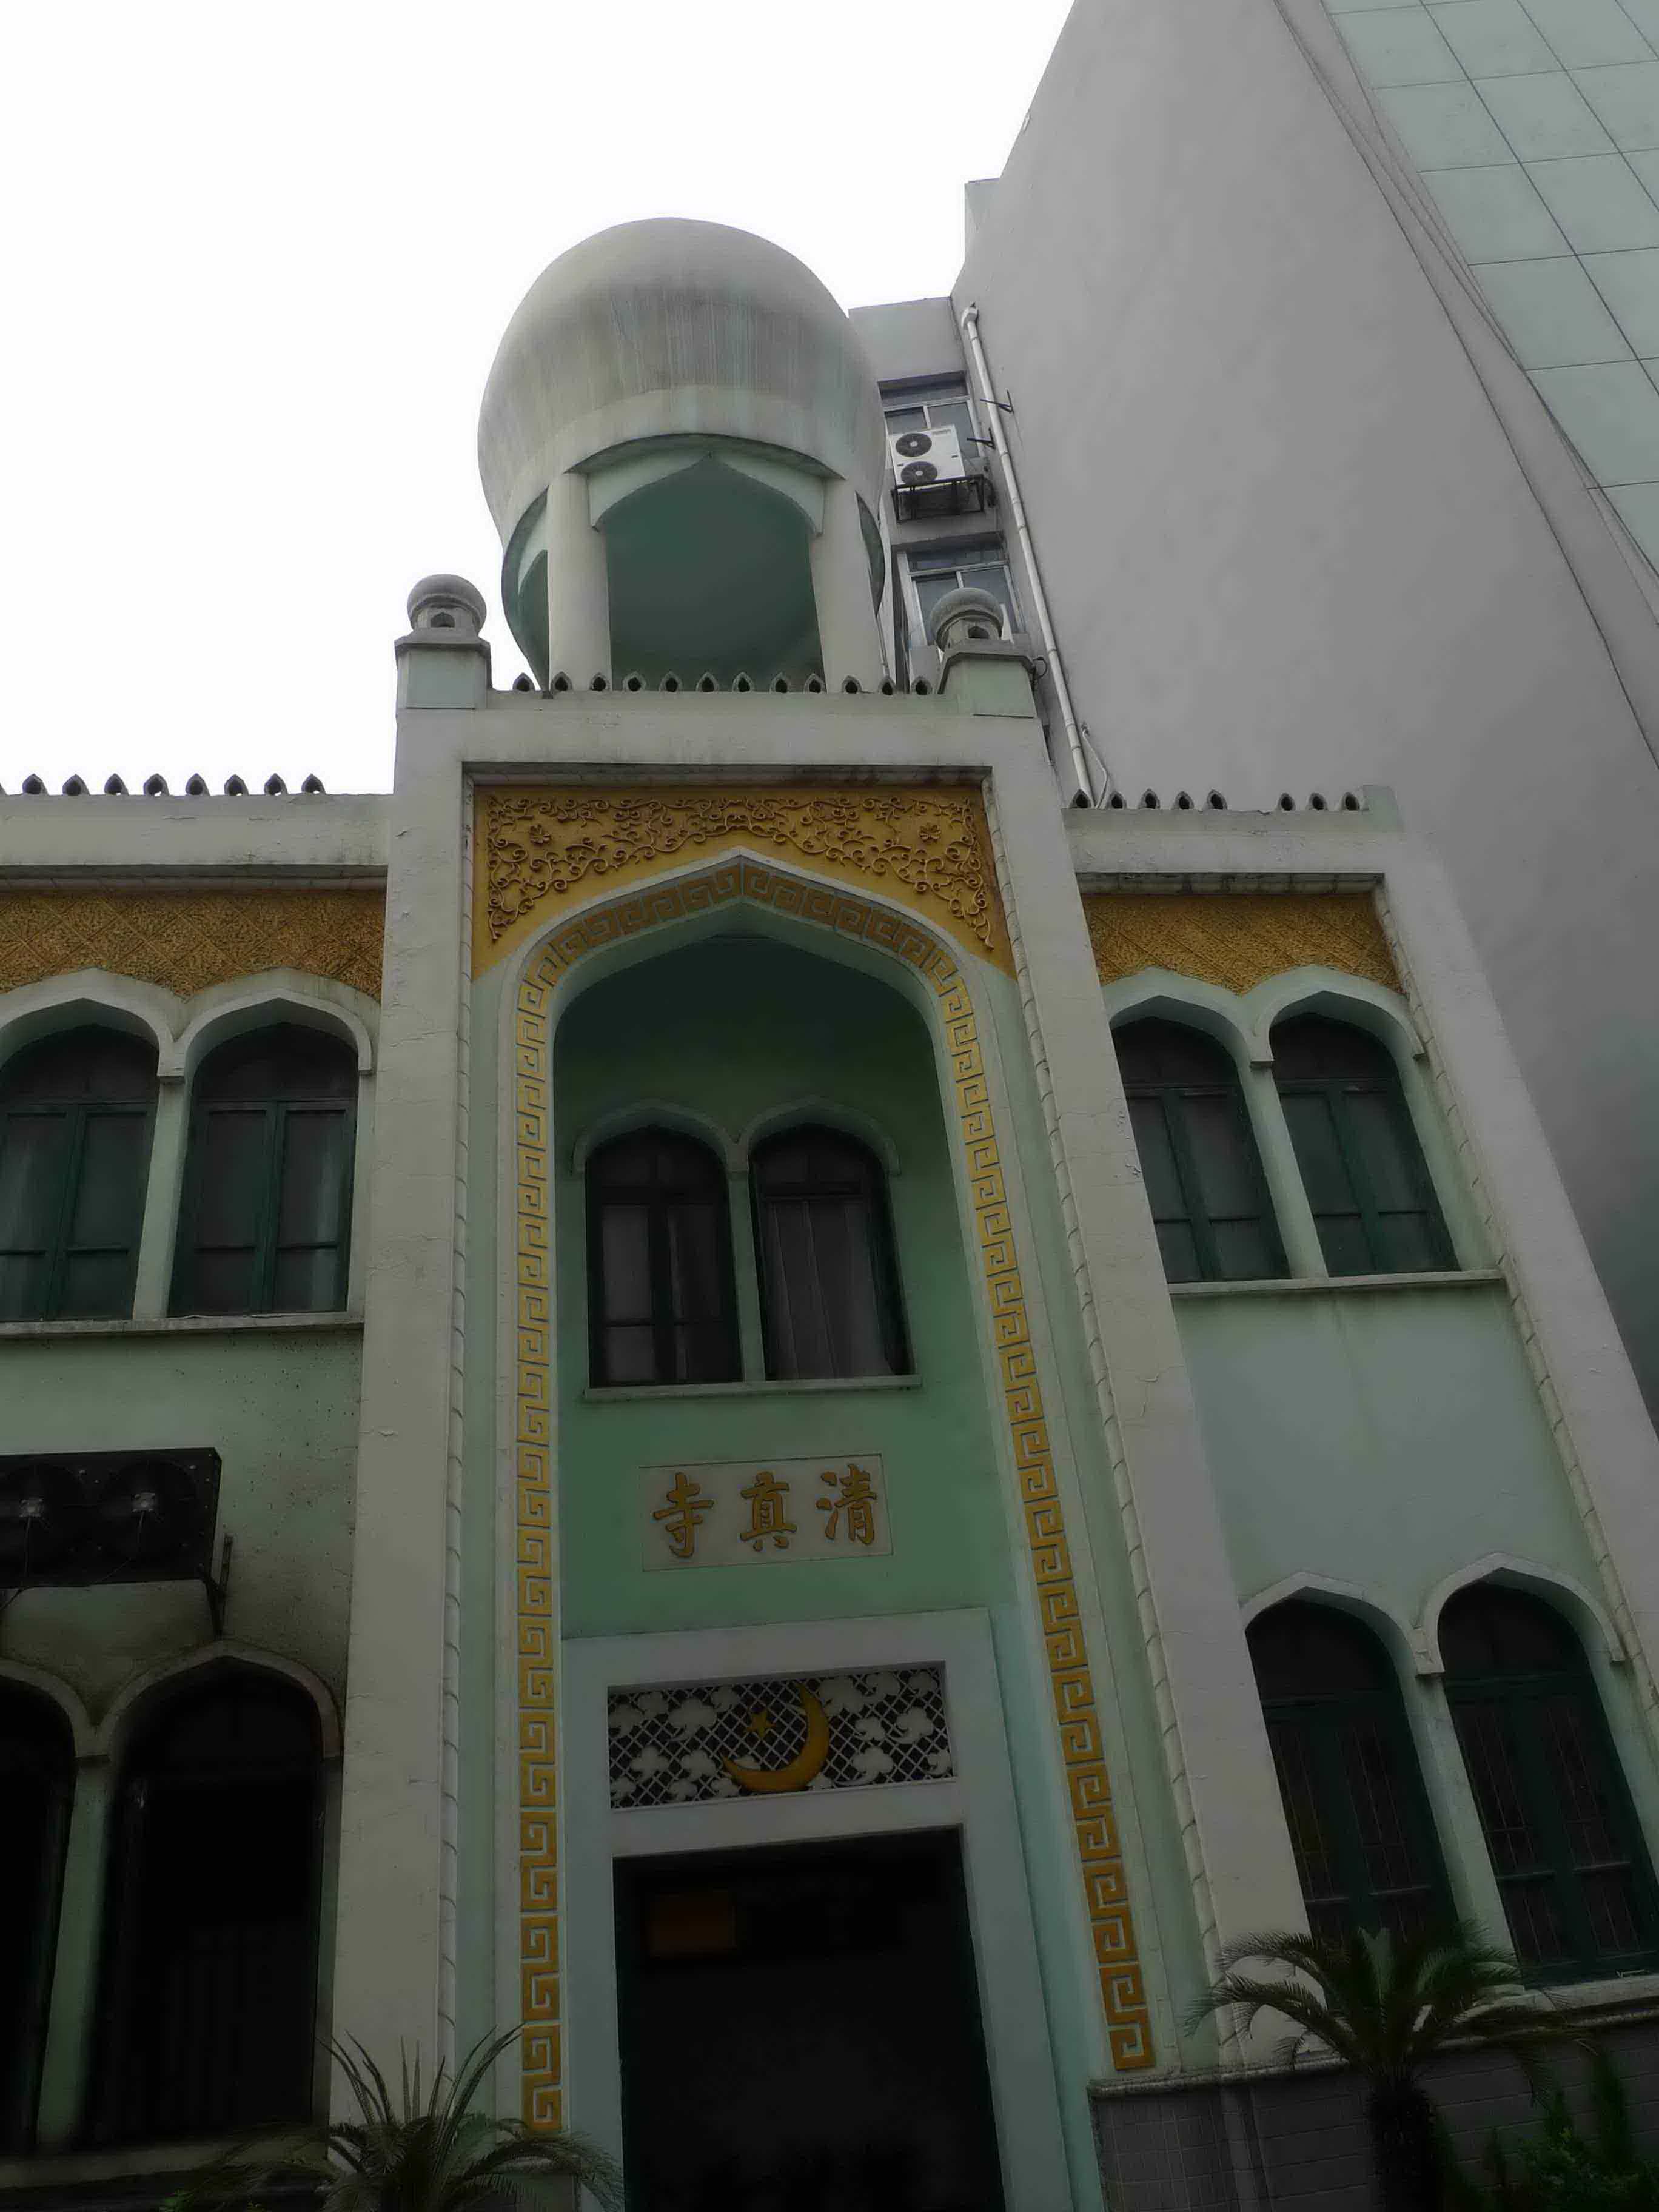 xining muslim personals Xining's best 100% free muslim dating site meet thousands of single muslims in xining with mingle2's free muslim personal ads and chat rooms our network of muslim men and women in xining is the perfect place to make muslim friends or find a muslim boyfriend or girlfriend in xining.